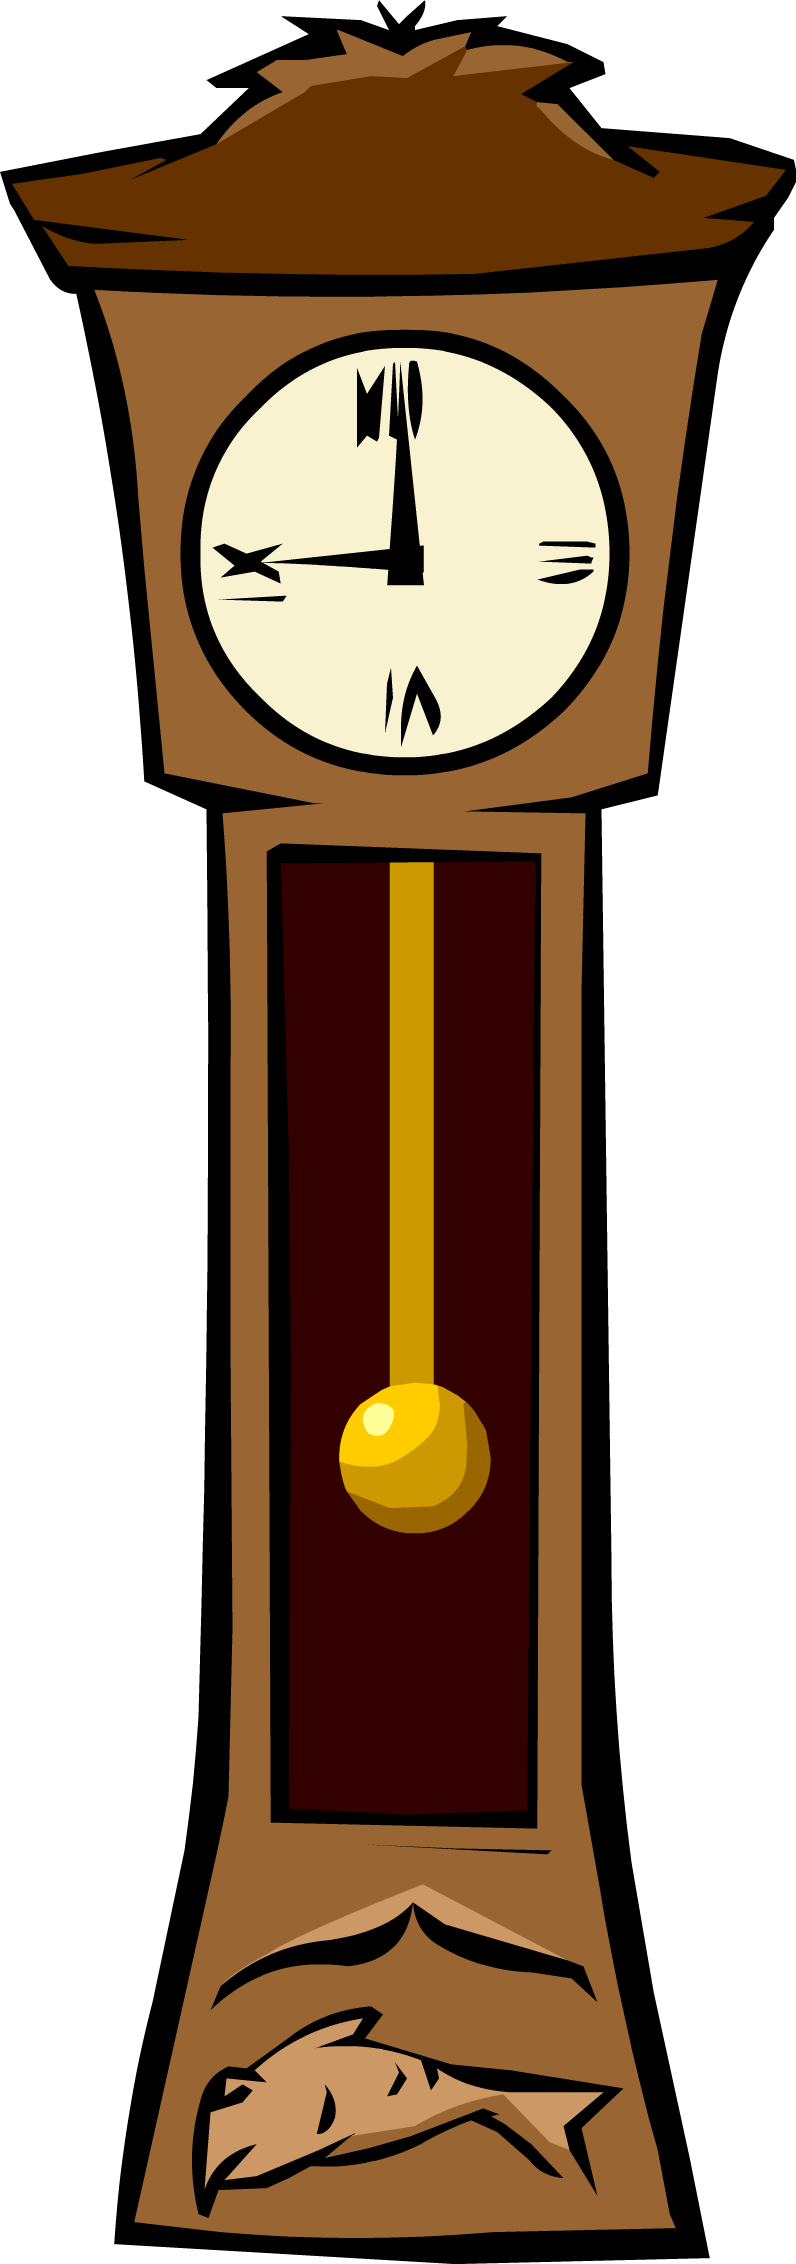 grandfather clock clipart yahoo search results yahoo image search rh pinterest com Wall Clock Clip Art Cartoon Clock Clip Art